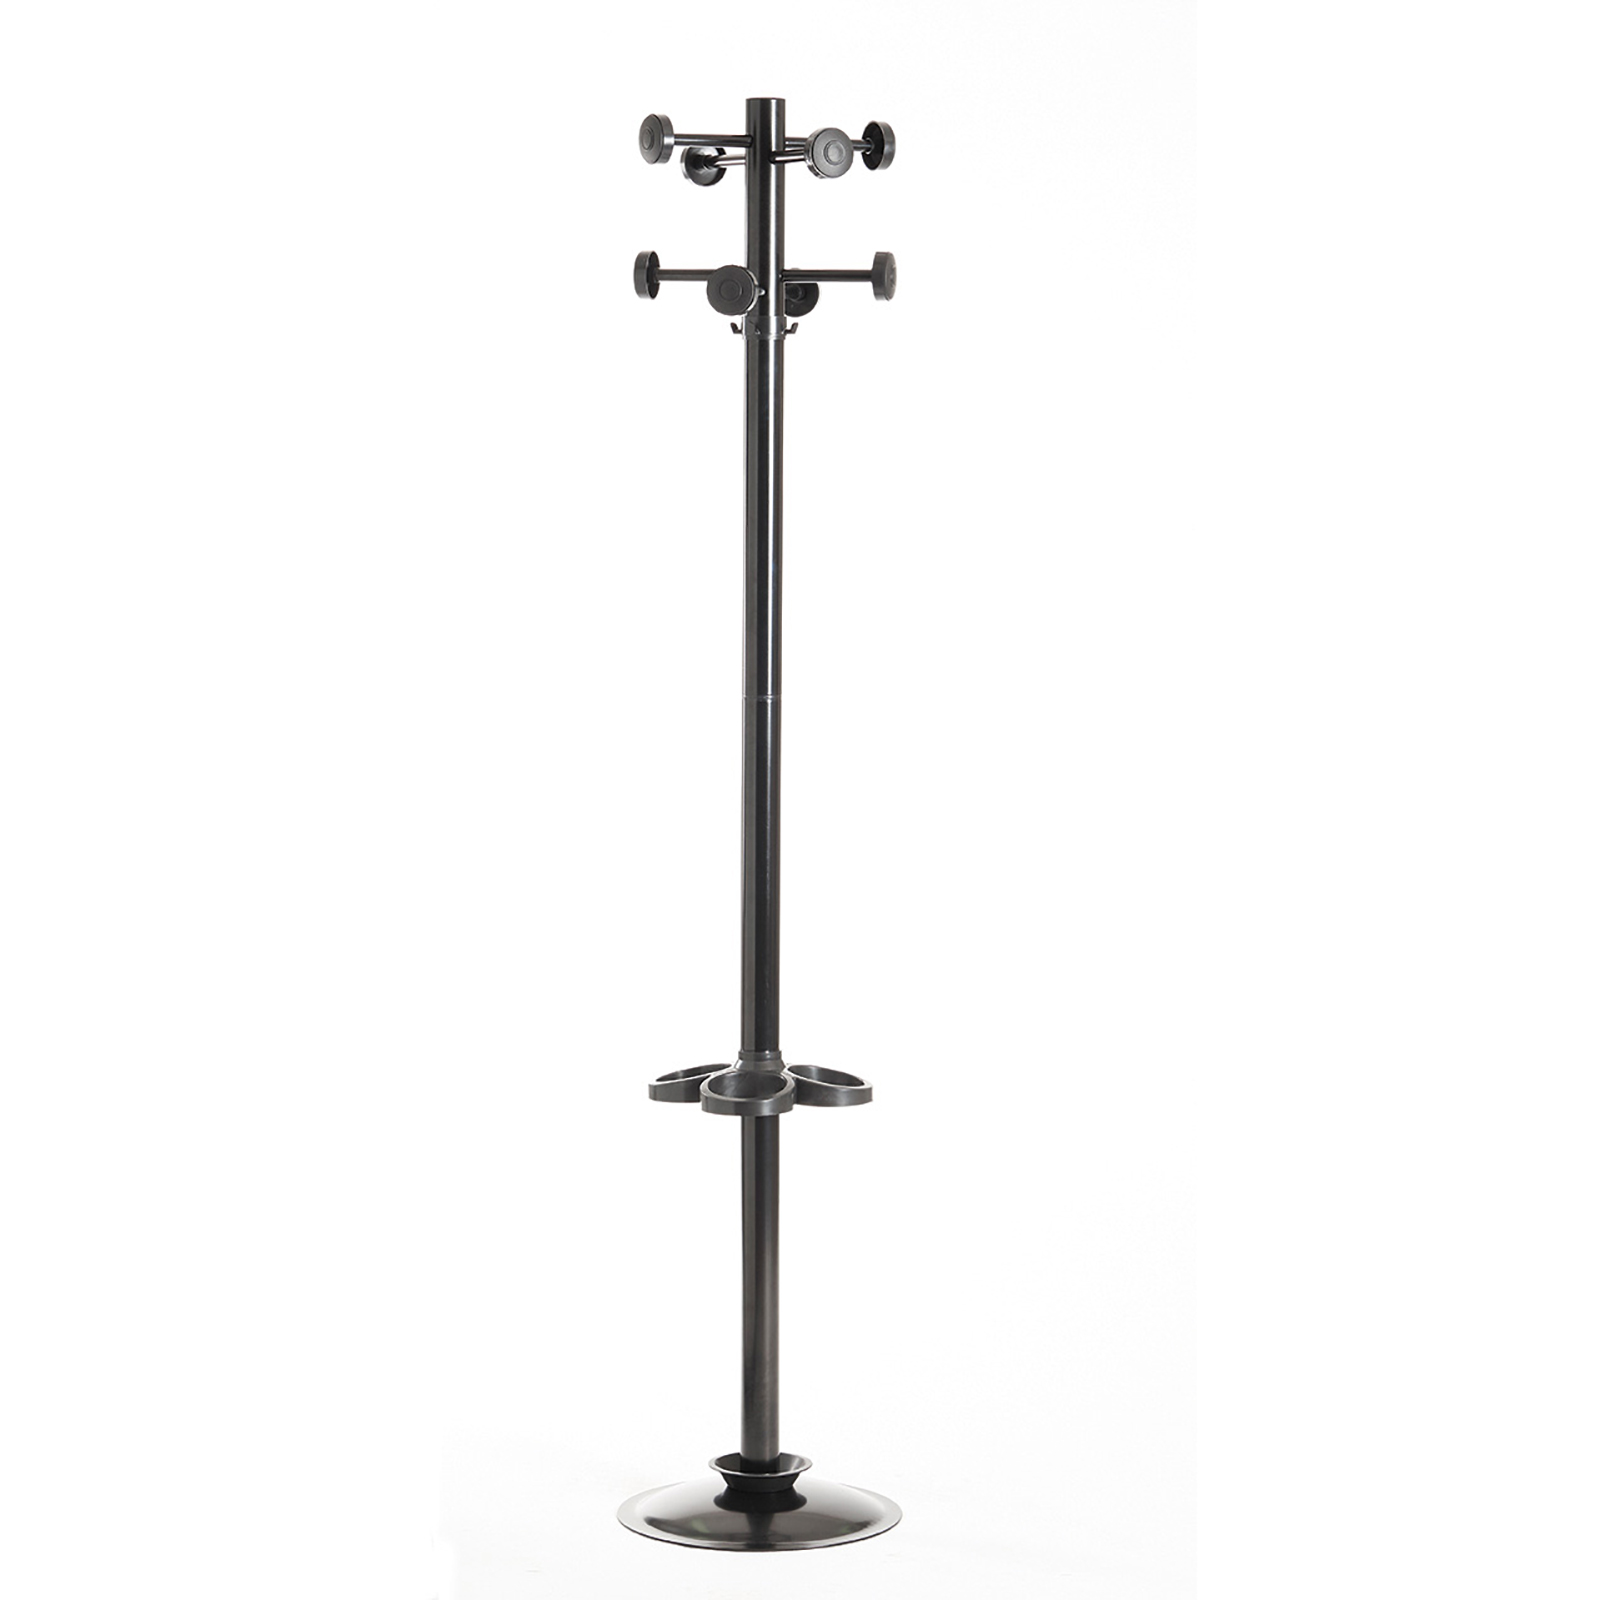 Umbrella Stands Coat & umbrella stand with 8 coat hooks and 8 umbrella hooks 1780mm high - black